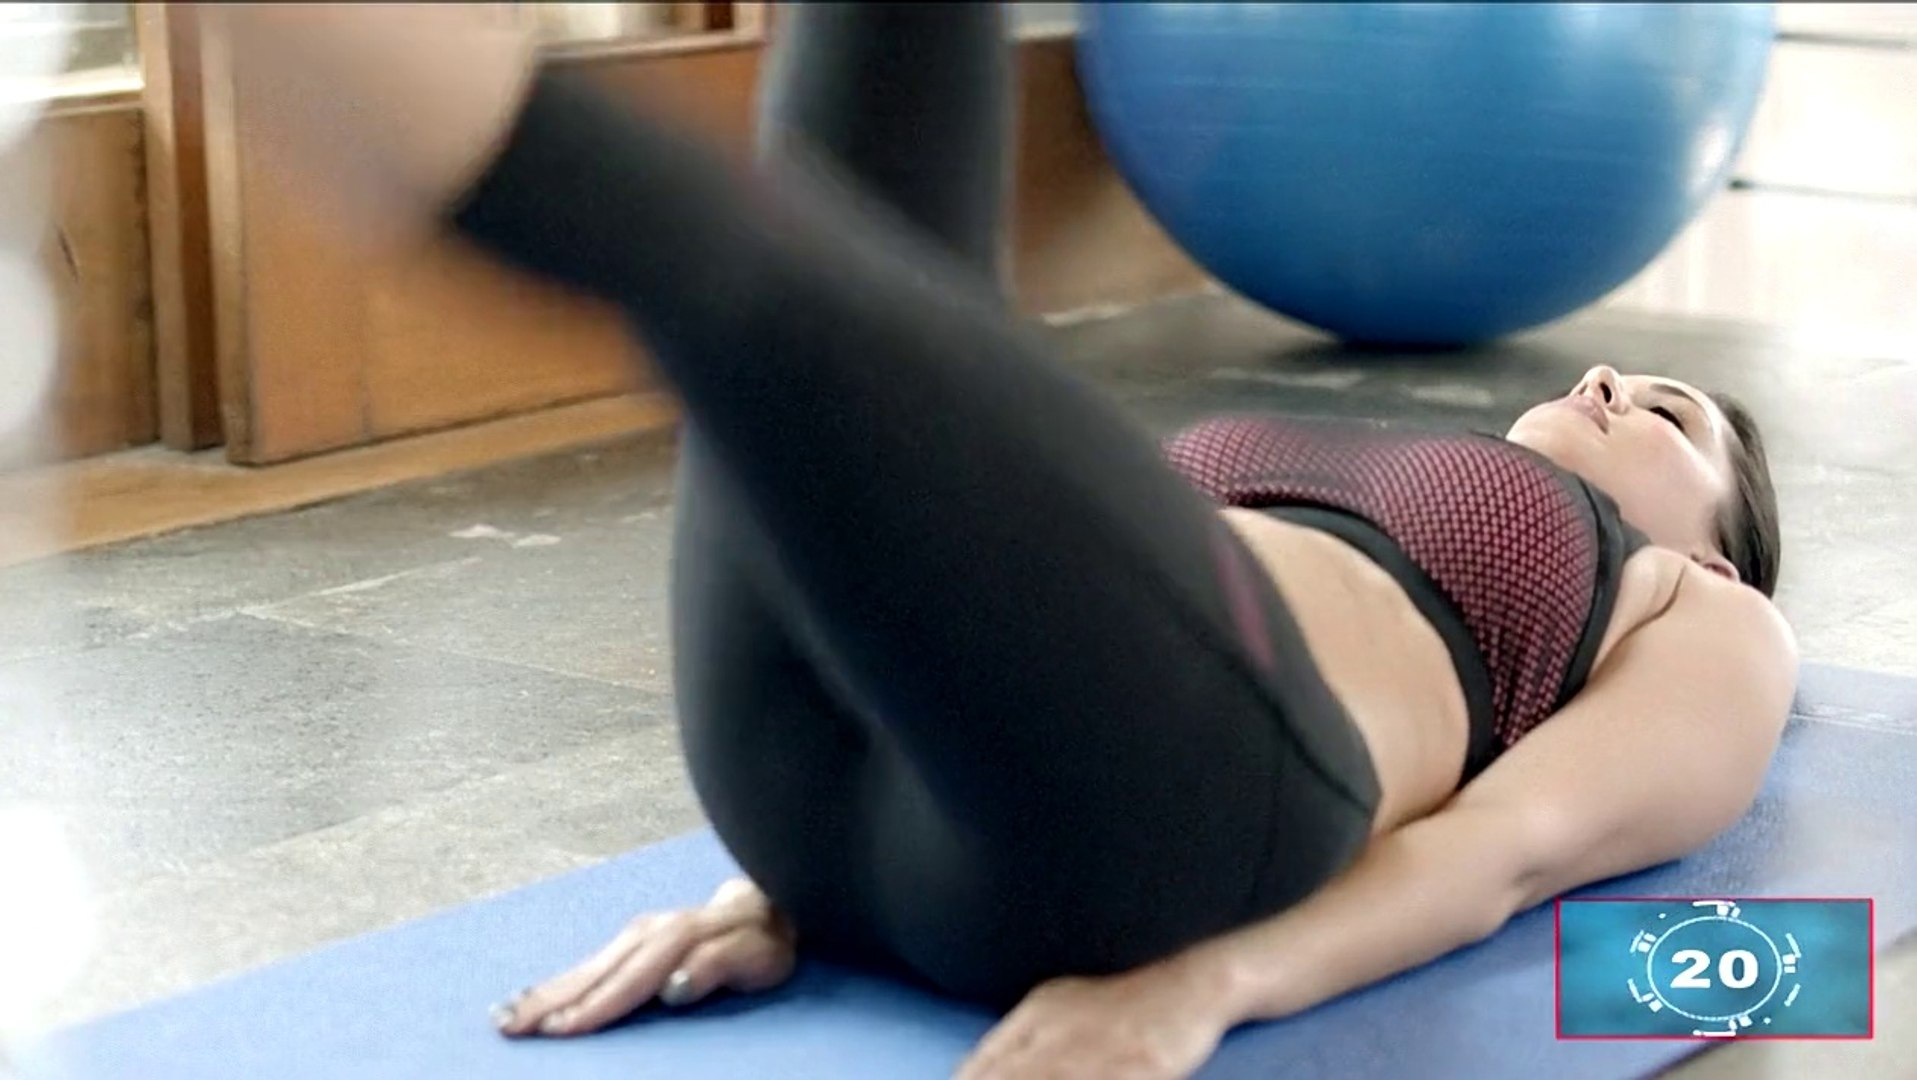 Super Hot Sunny Morning - Sunny Leone Full Workout 45 Mins HD Video